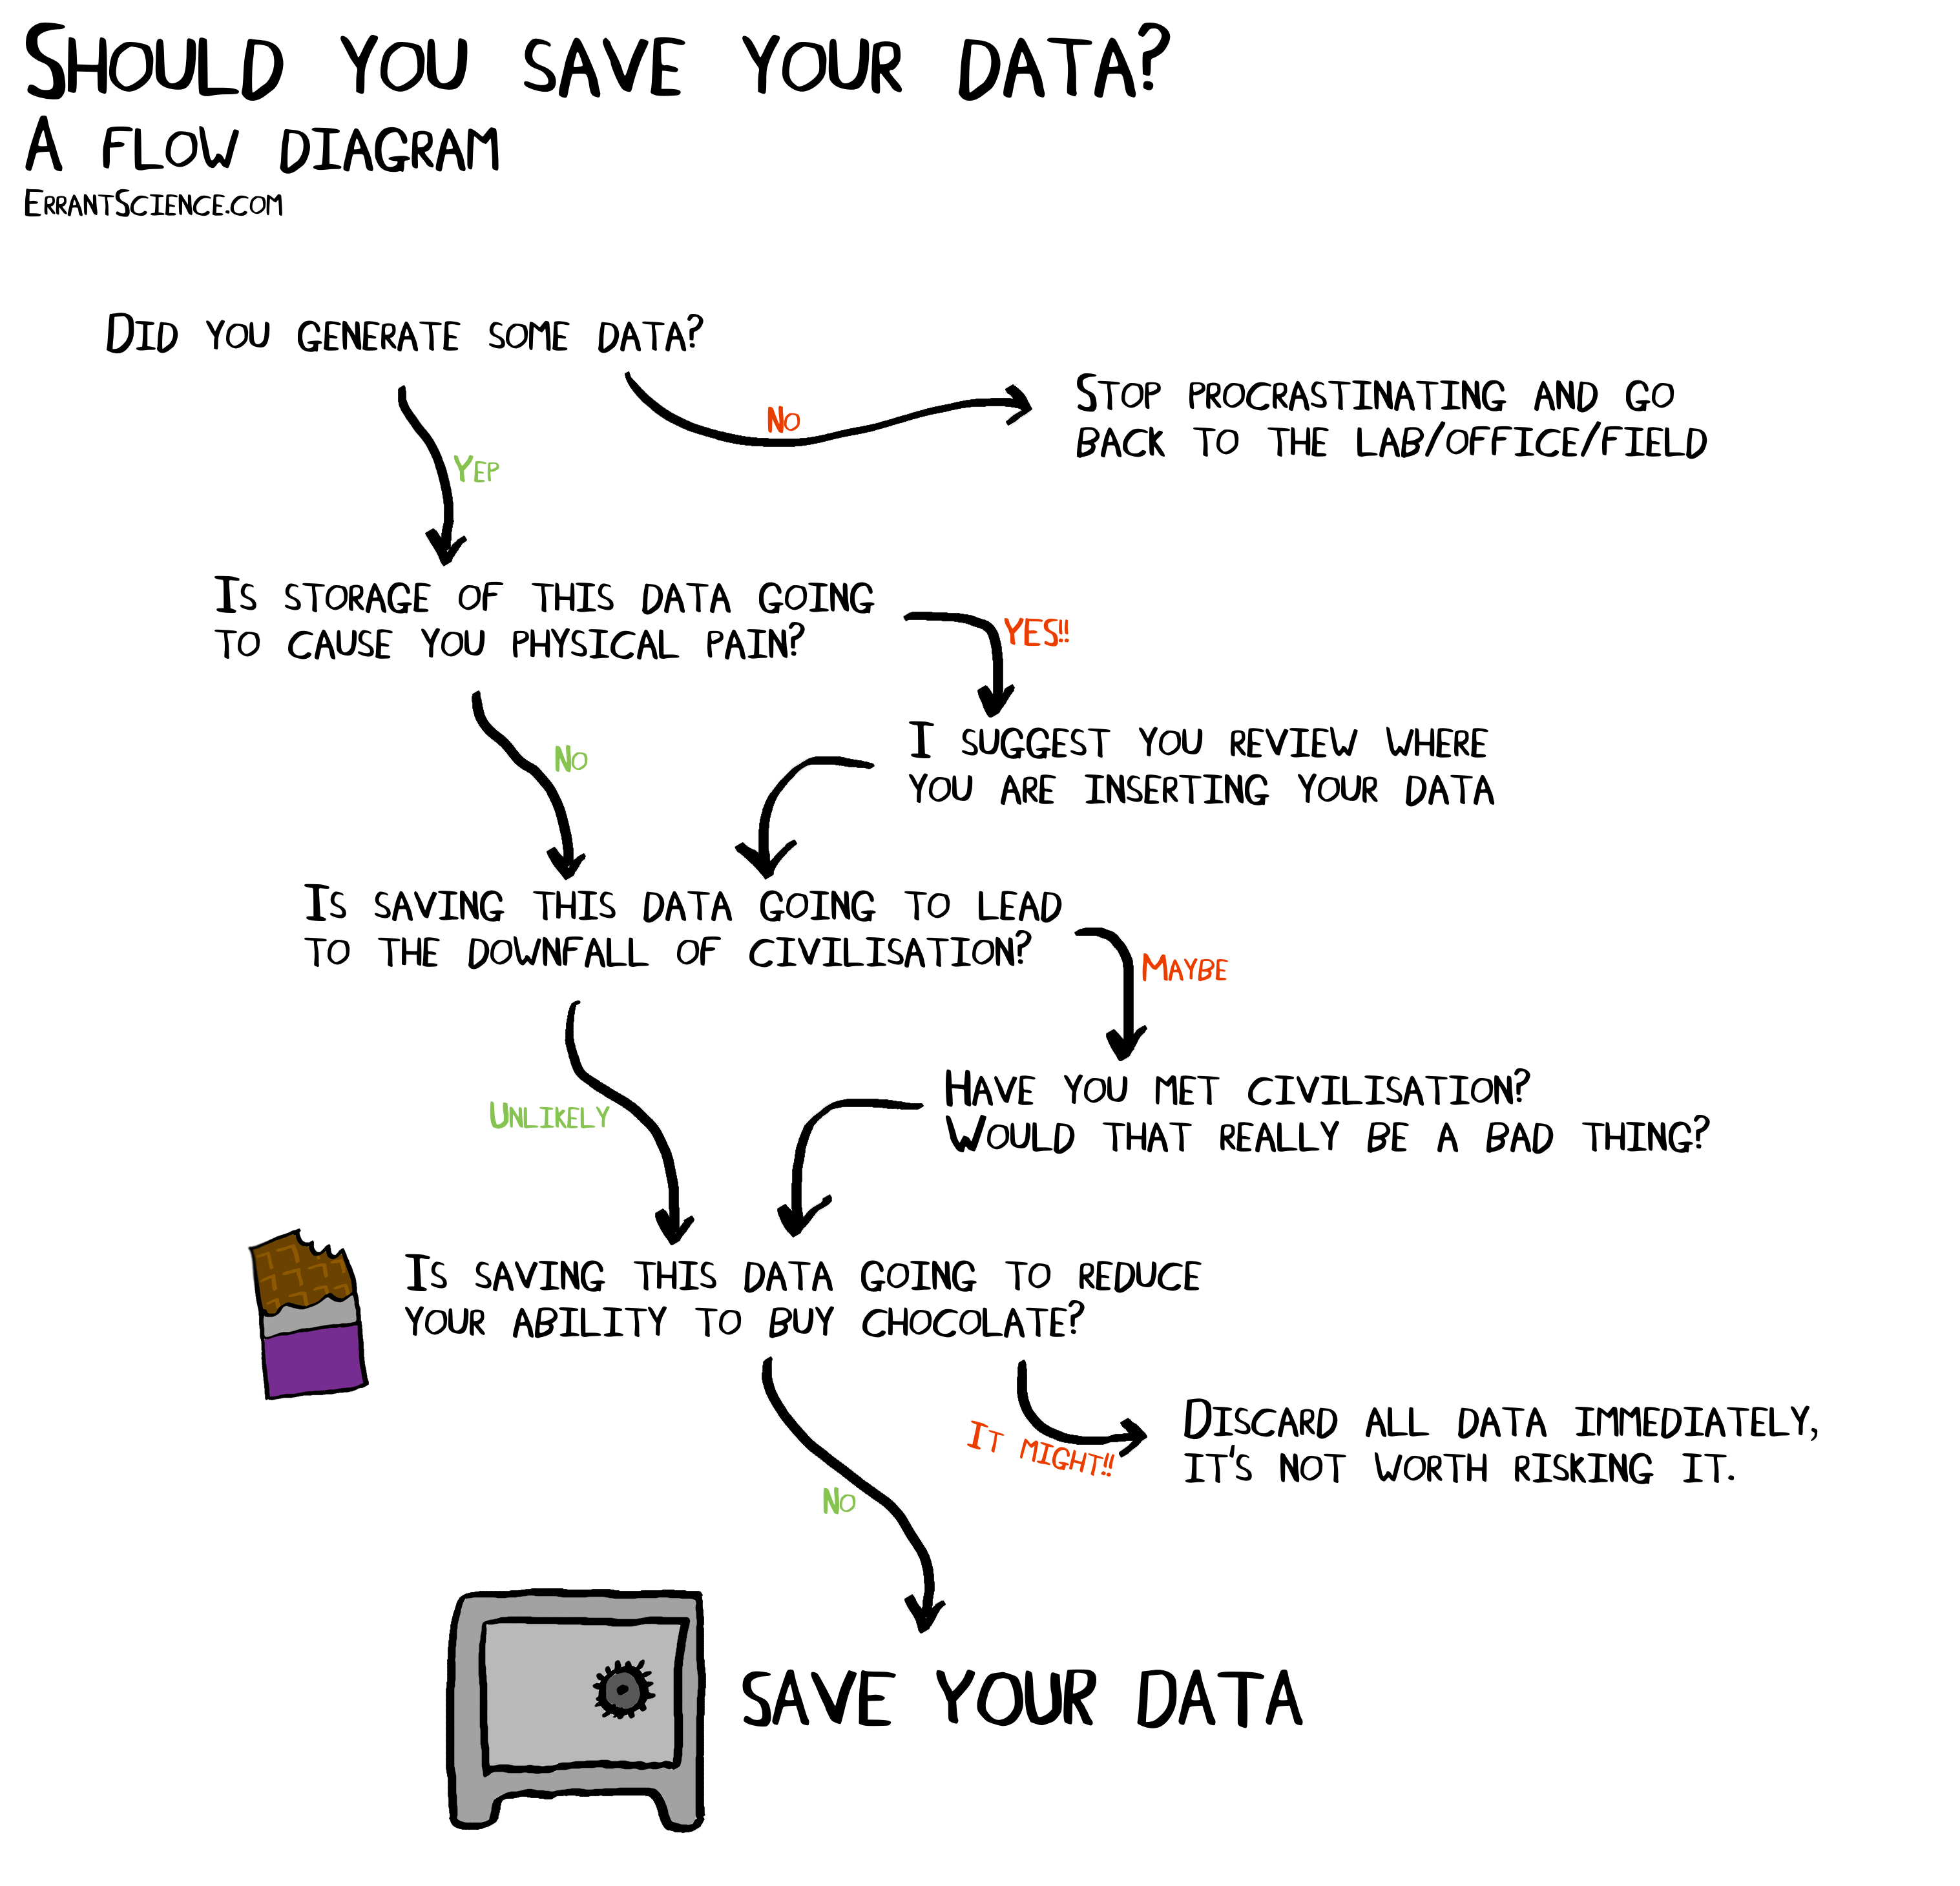 Should you save your data a flow diagram errantscience should you save your data a flow diagram pooptronica Images